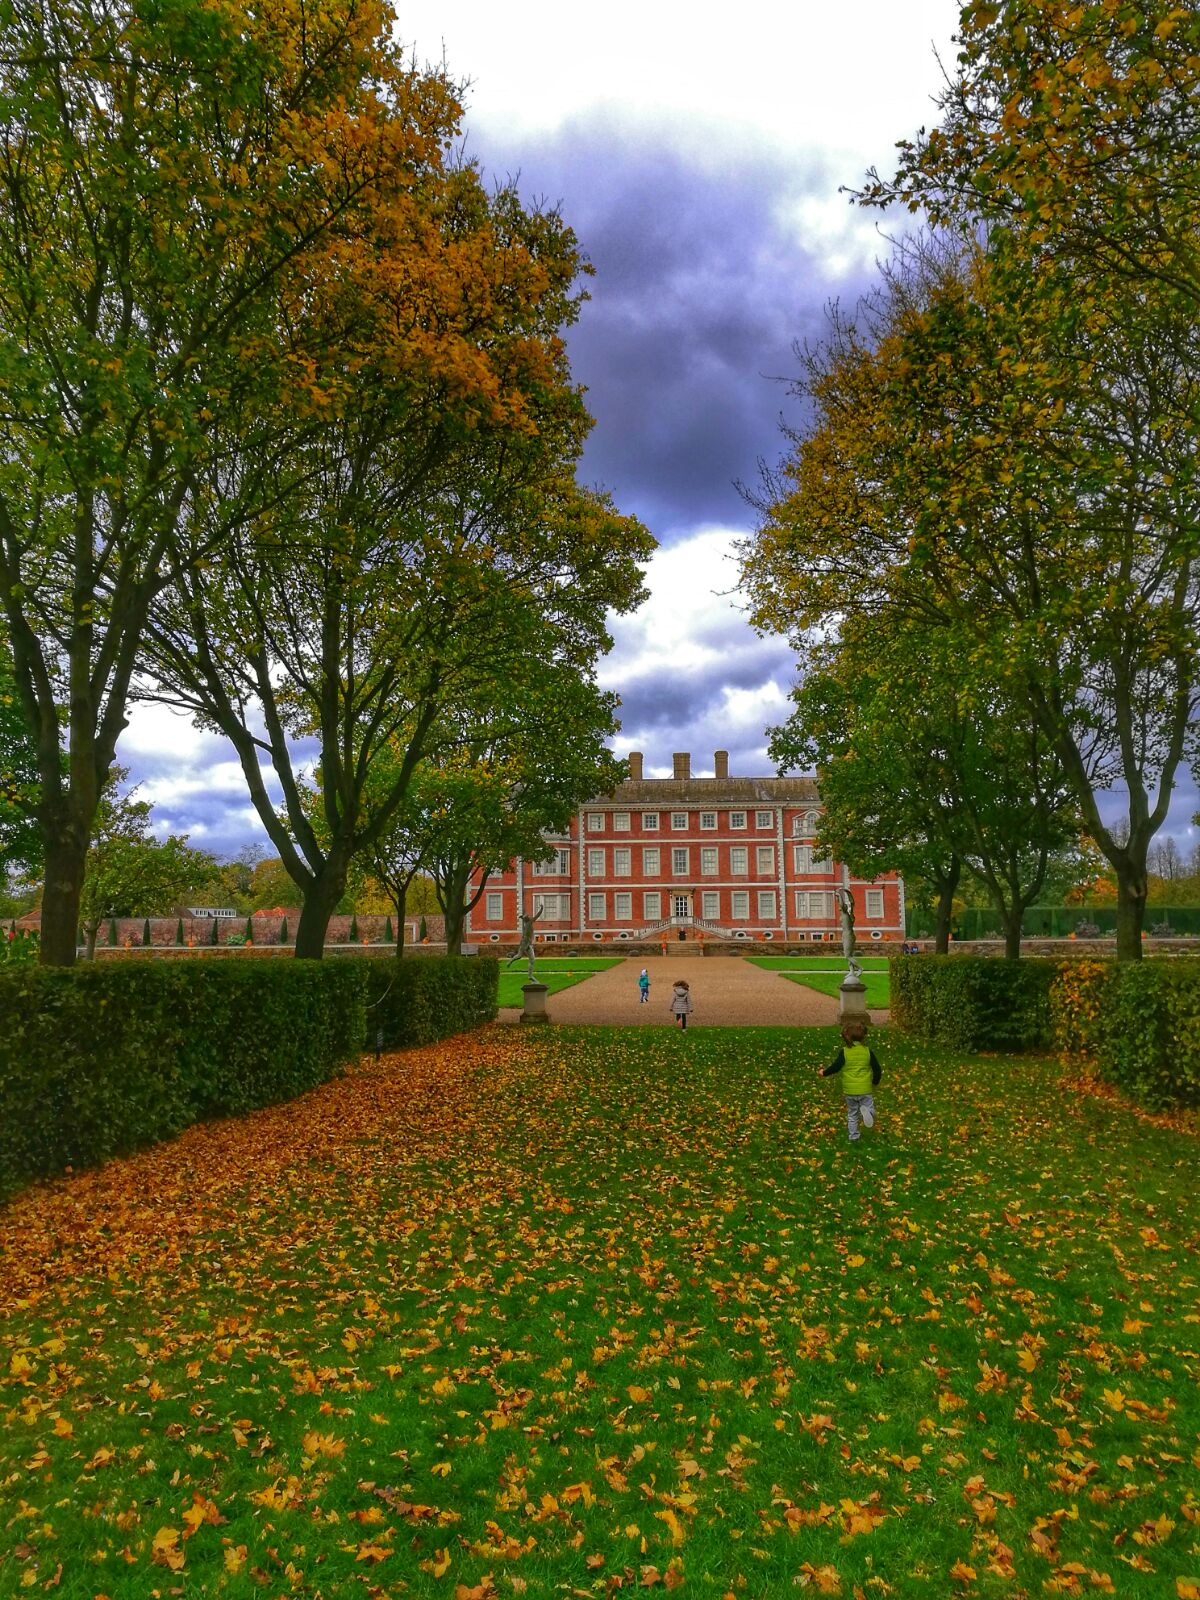 #CulturedKids October: Ham House London